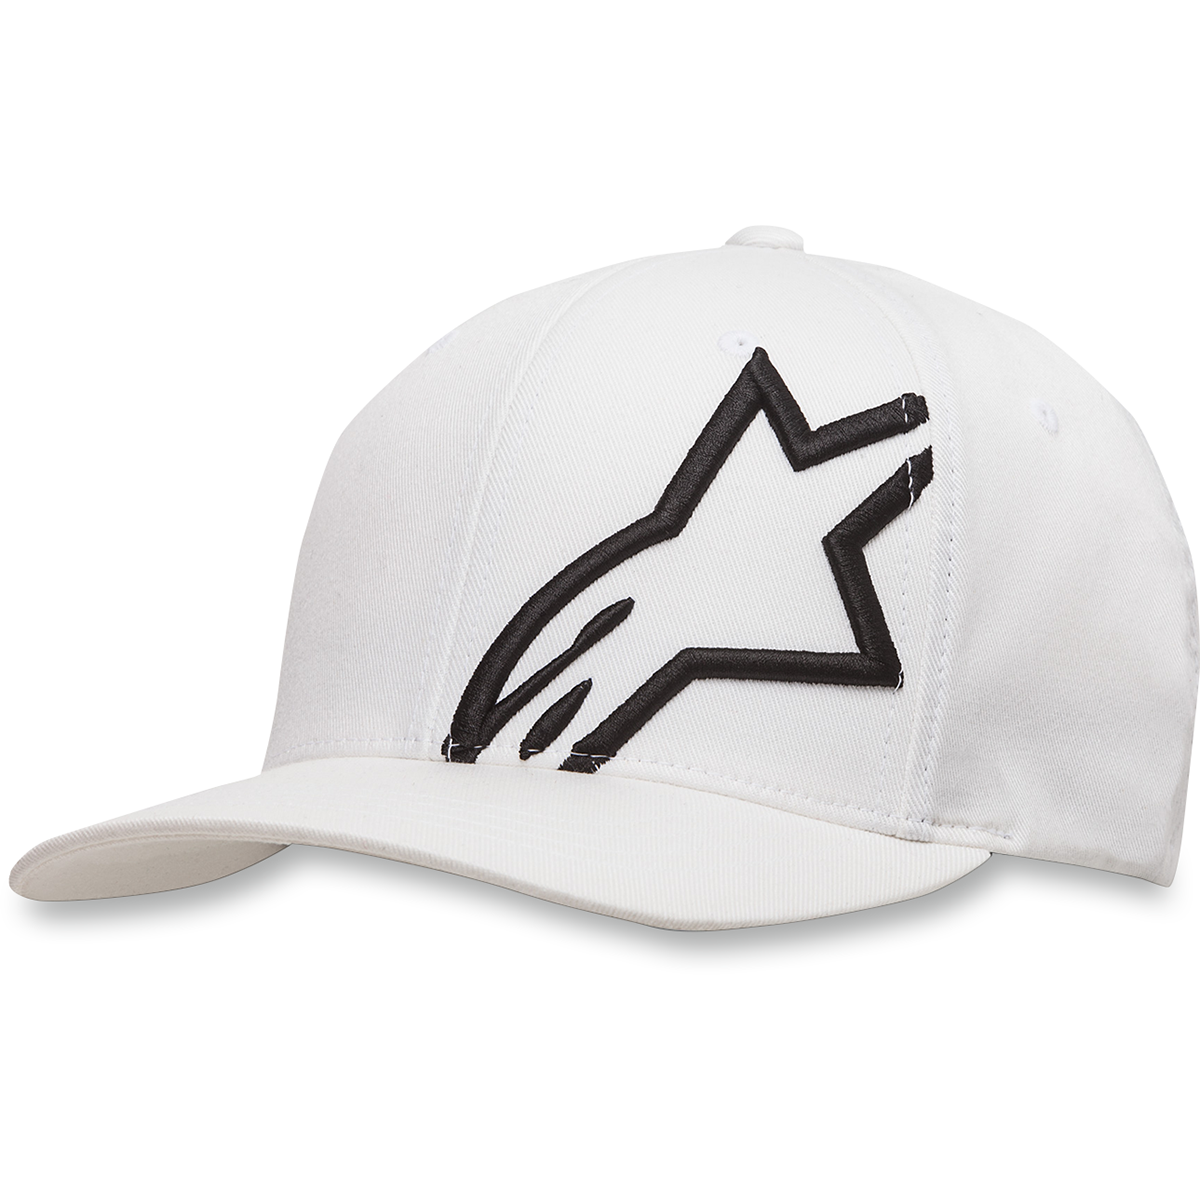 Corporate Shift 2 Flexfit® Hat